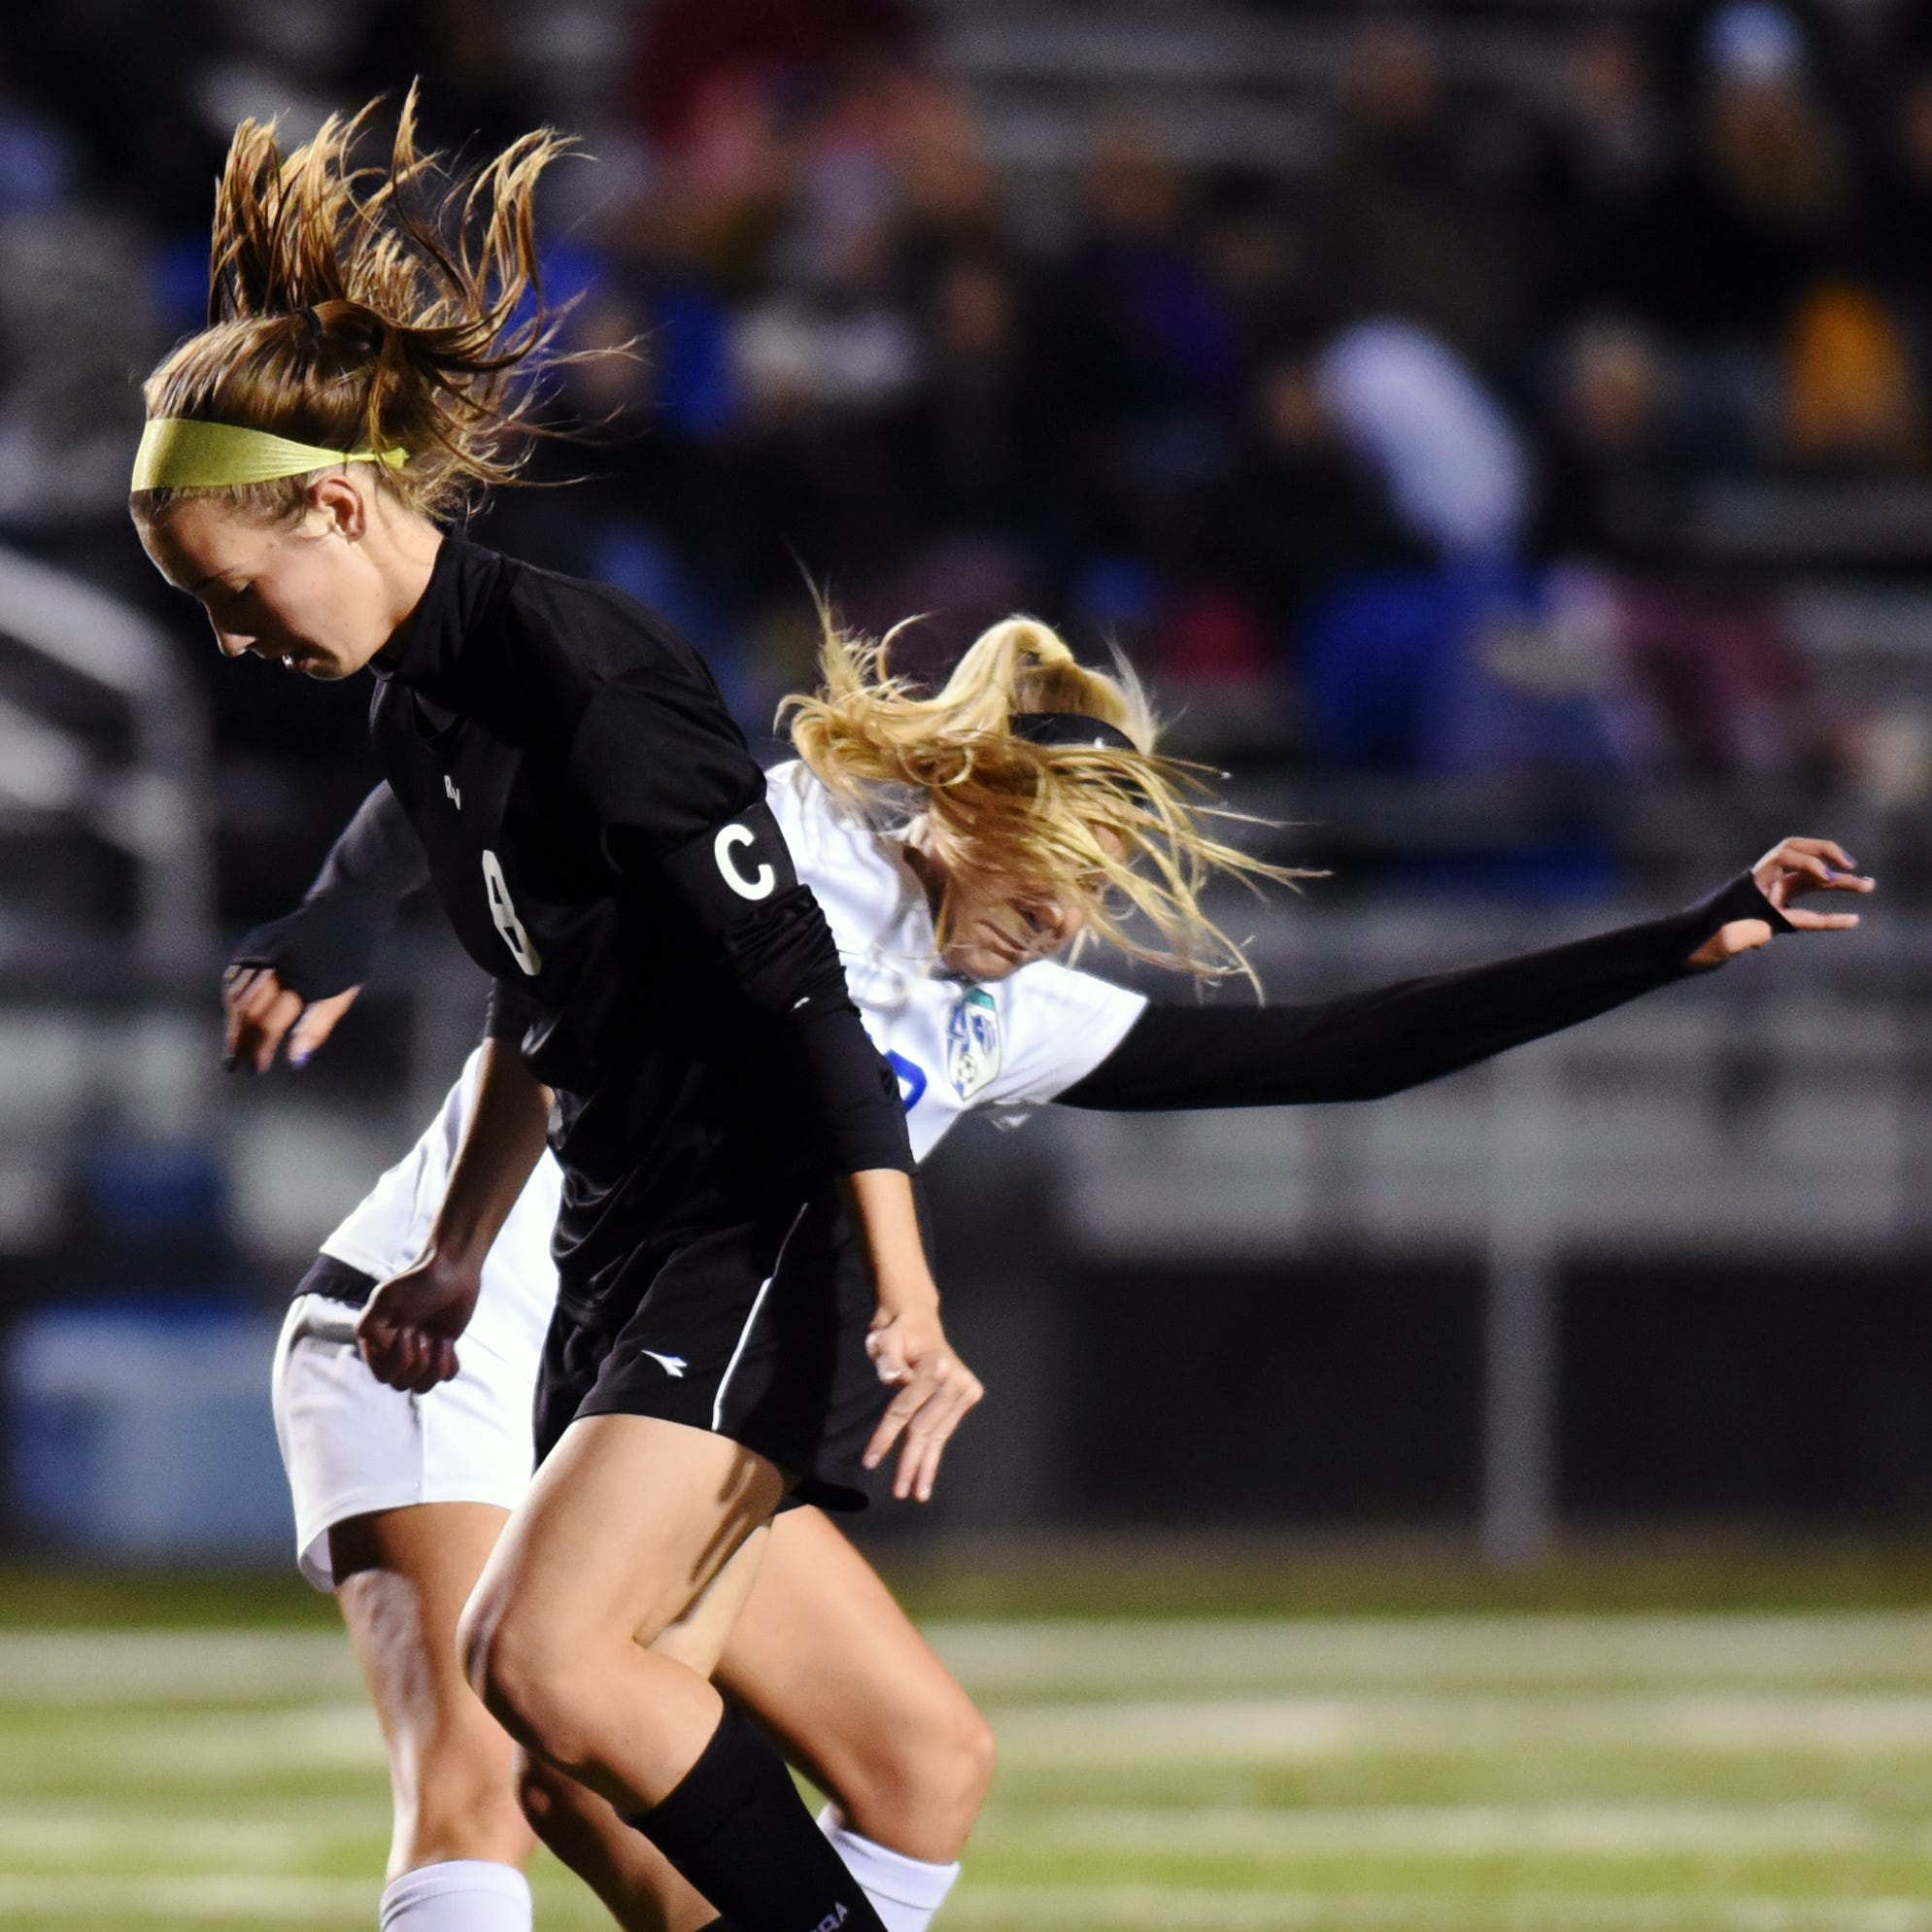 River View's Emmie Brenly, left, and Zanesville's Valerie Hickman fight for the ball during their Division II district semifinal on Monday in Coshocton.